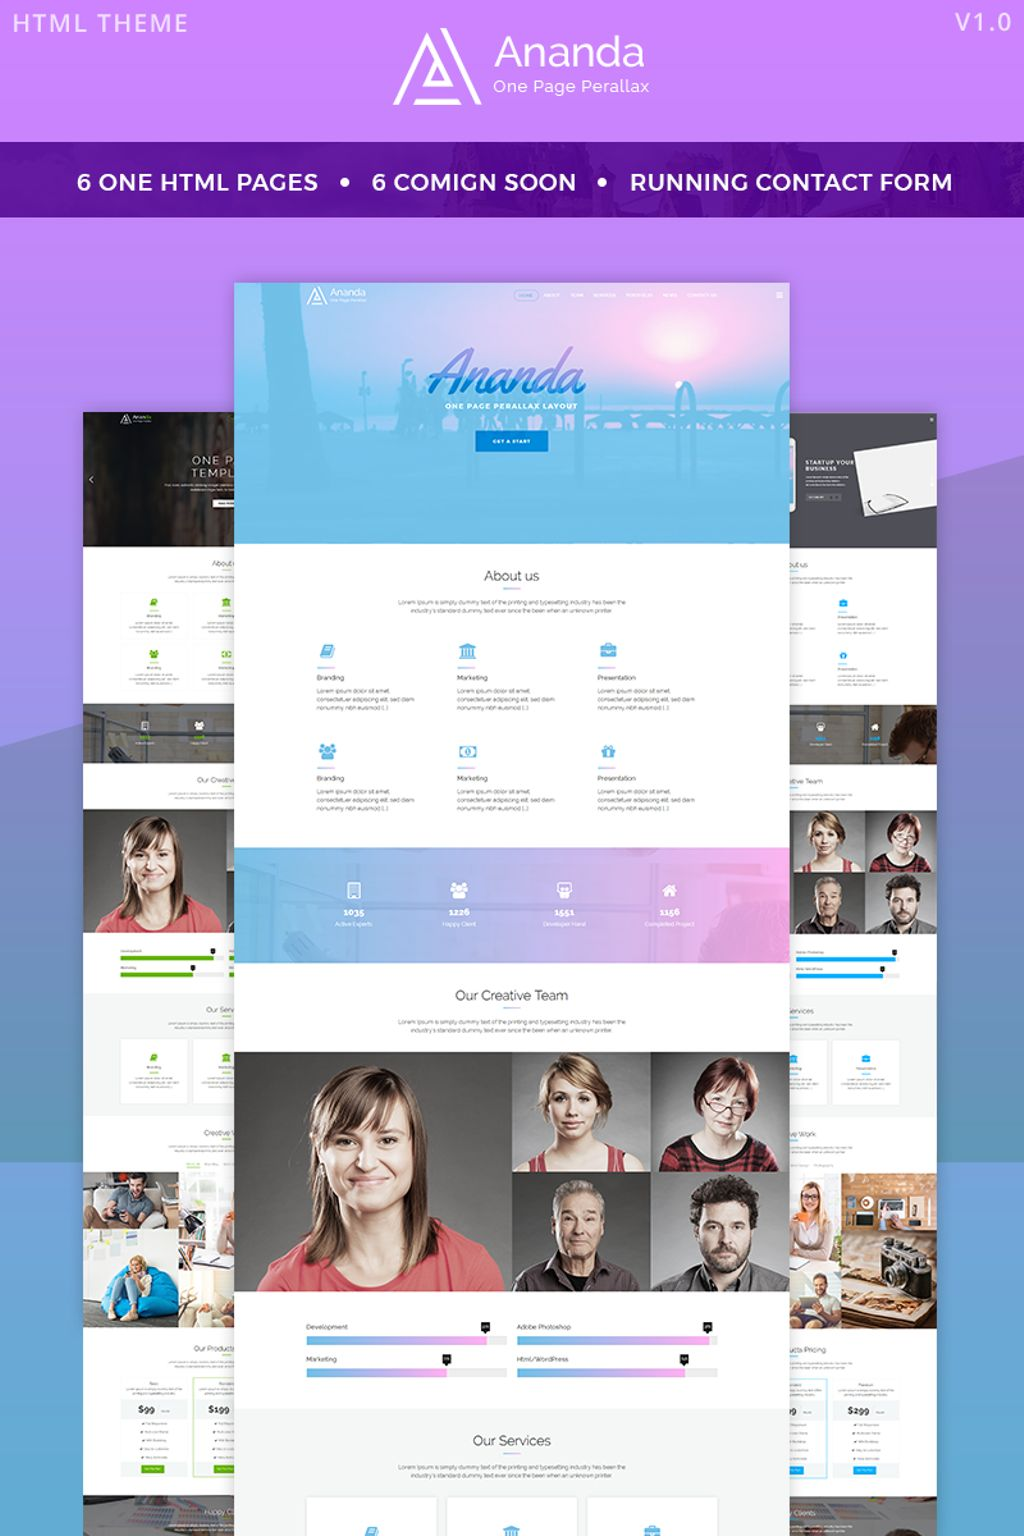 ananda one page parallax website template 65857. Black Bedroom Furniture Sets. Home Design Ideas